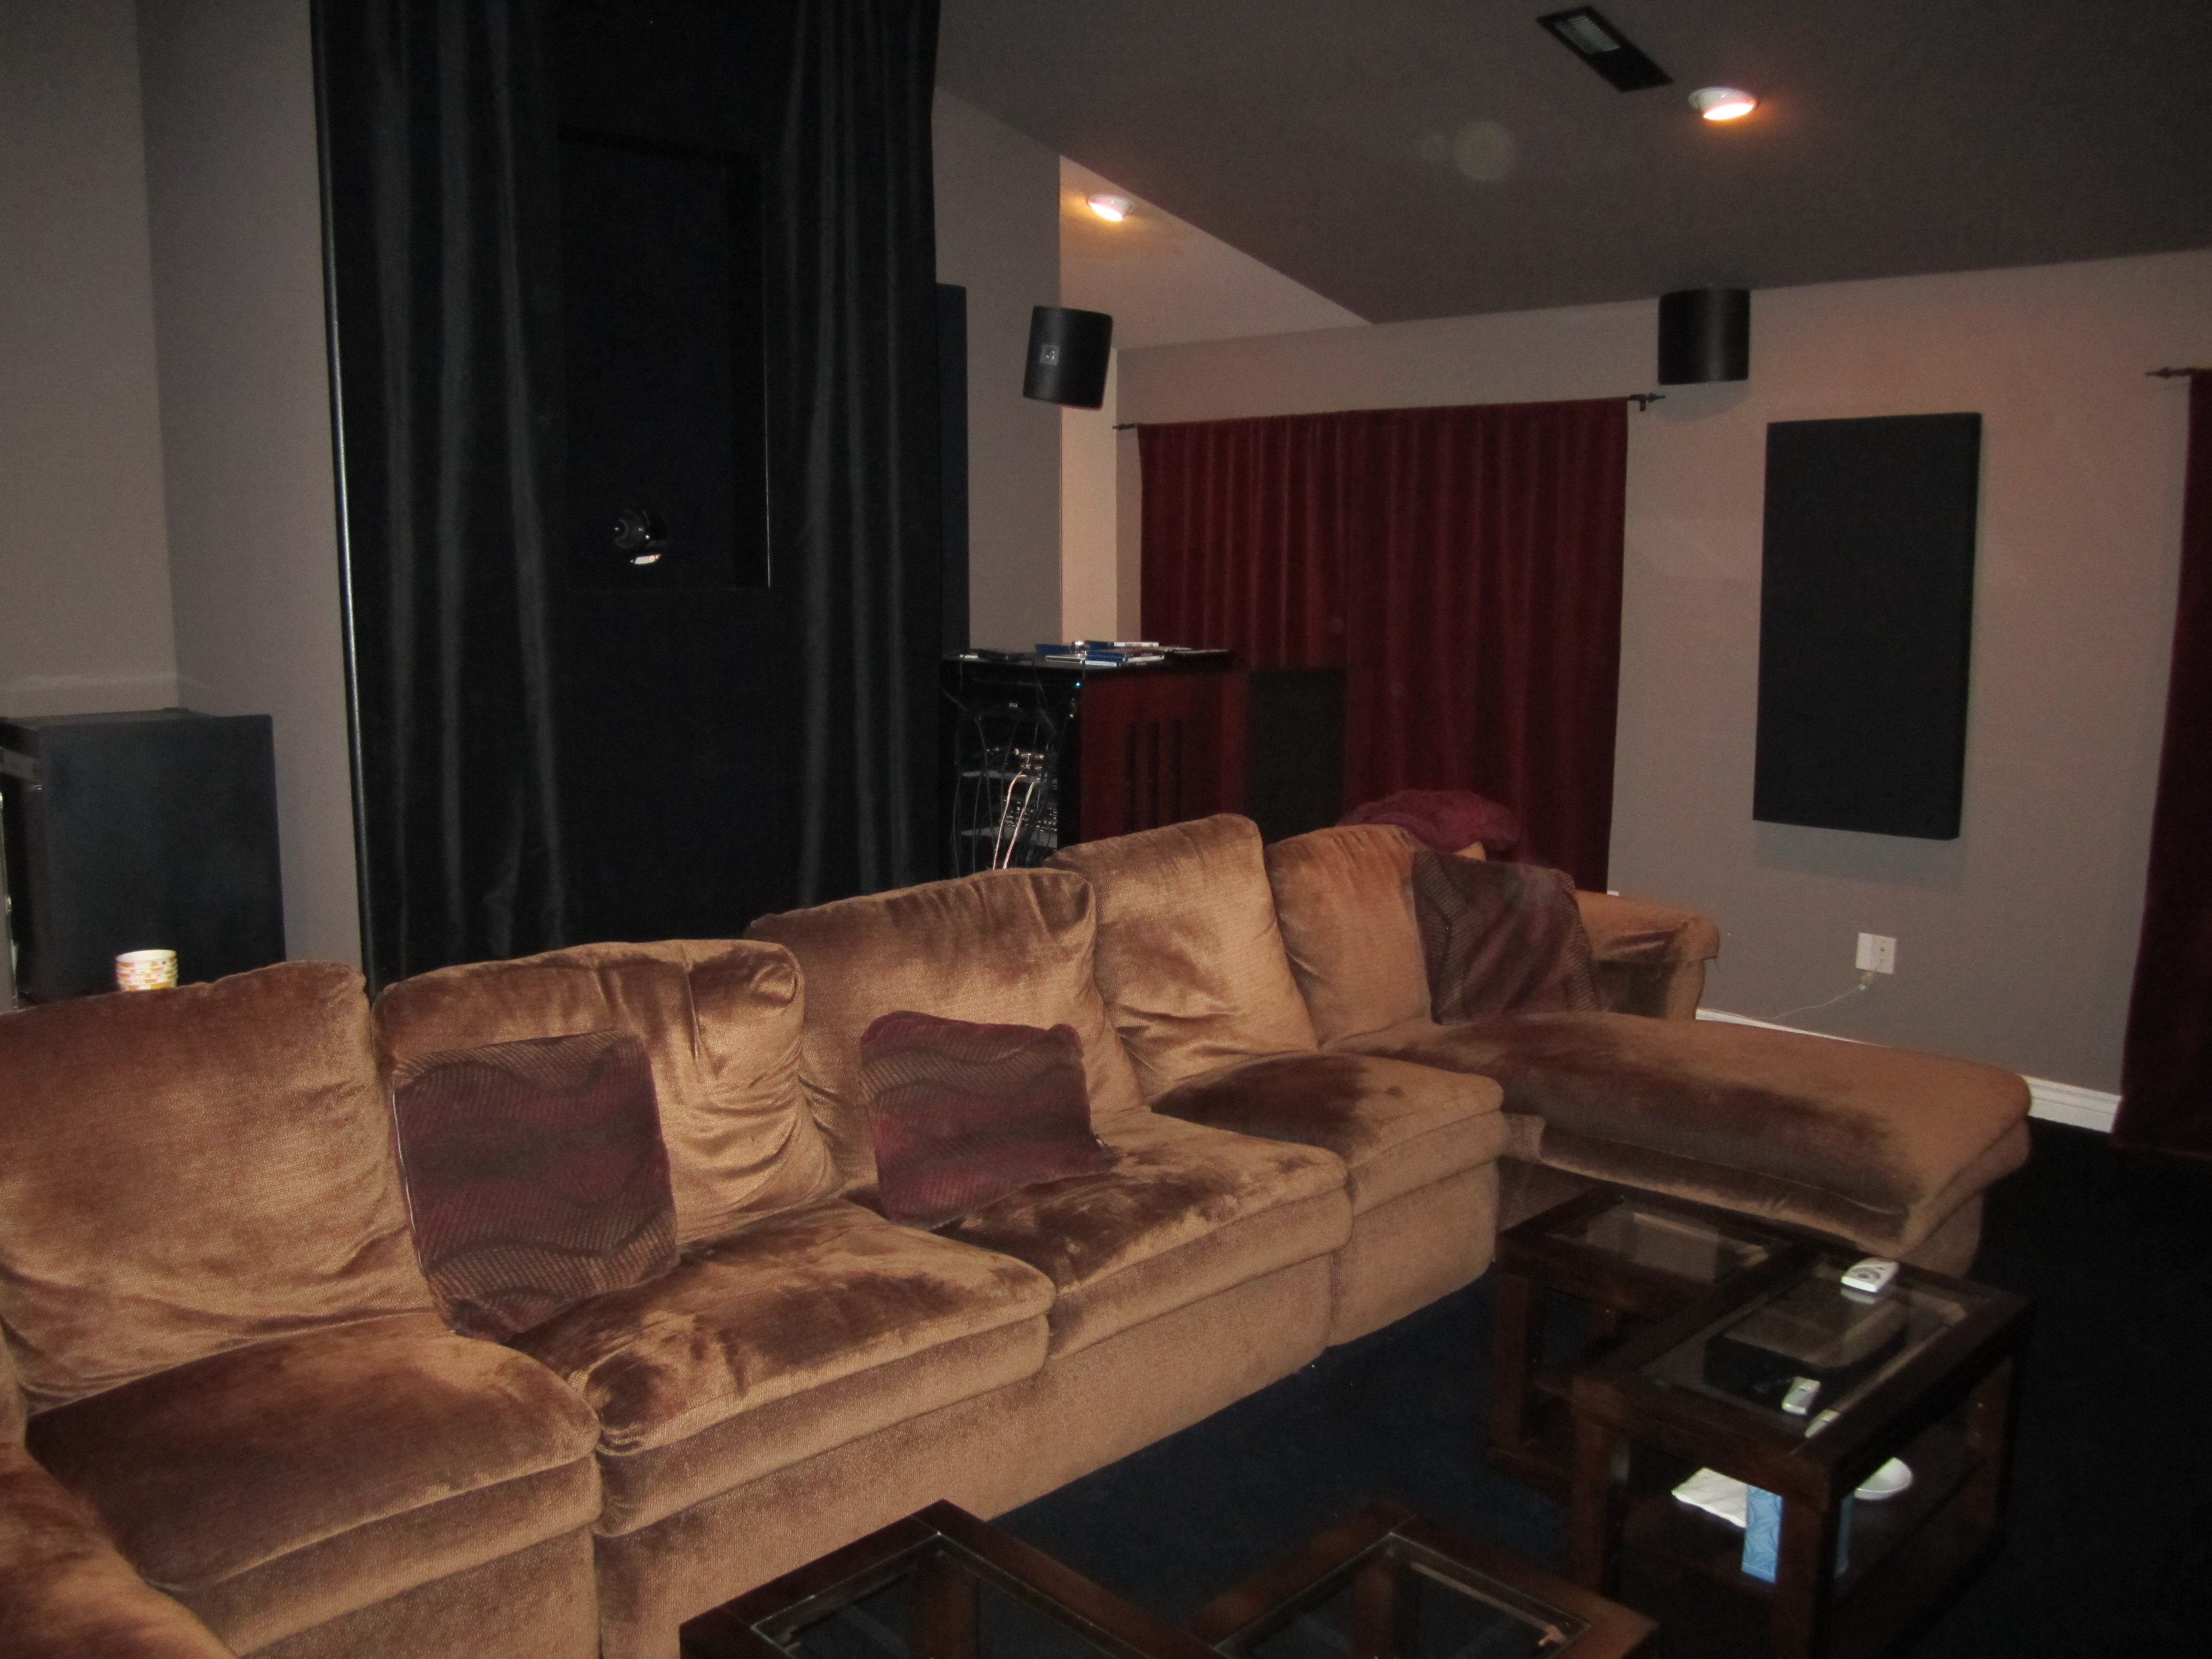 New GIK acoustic panels and Martin Logan Motion FX surround speakers.